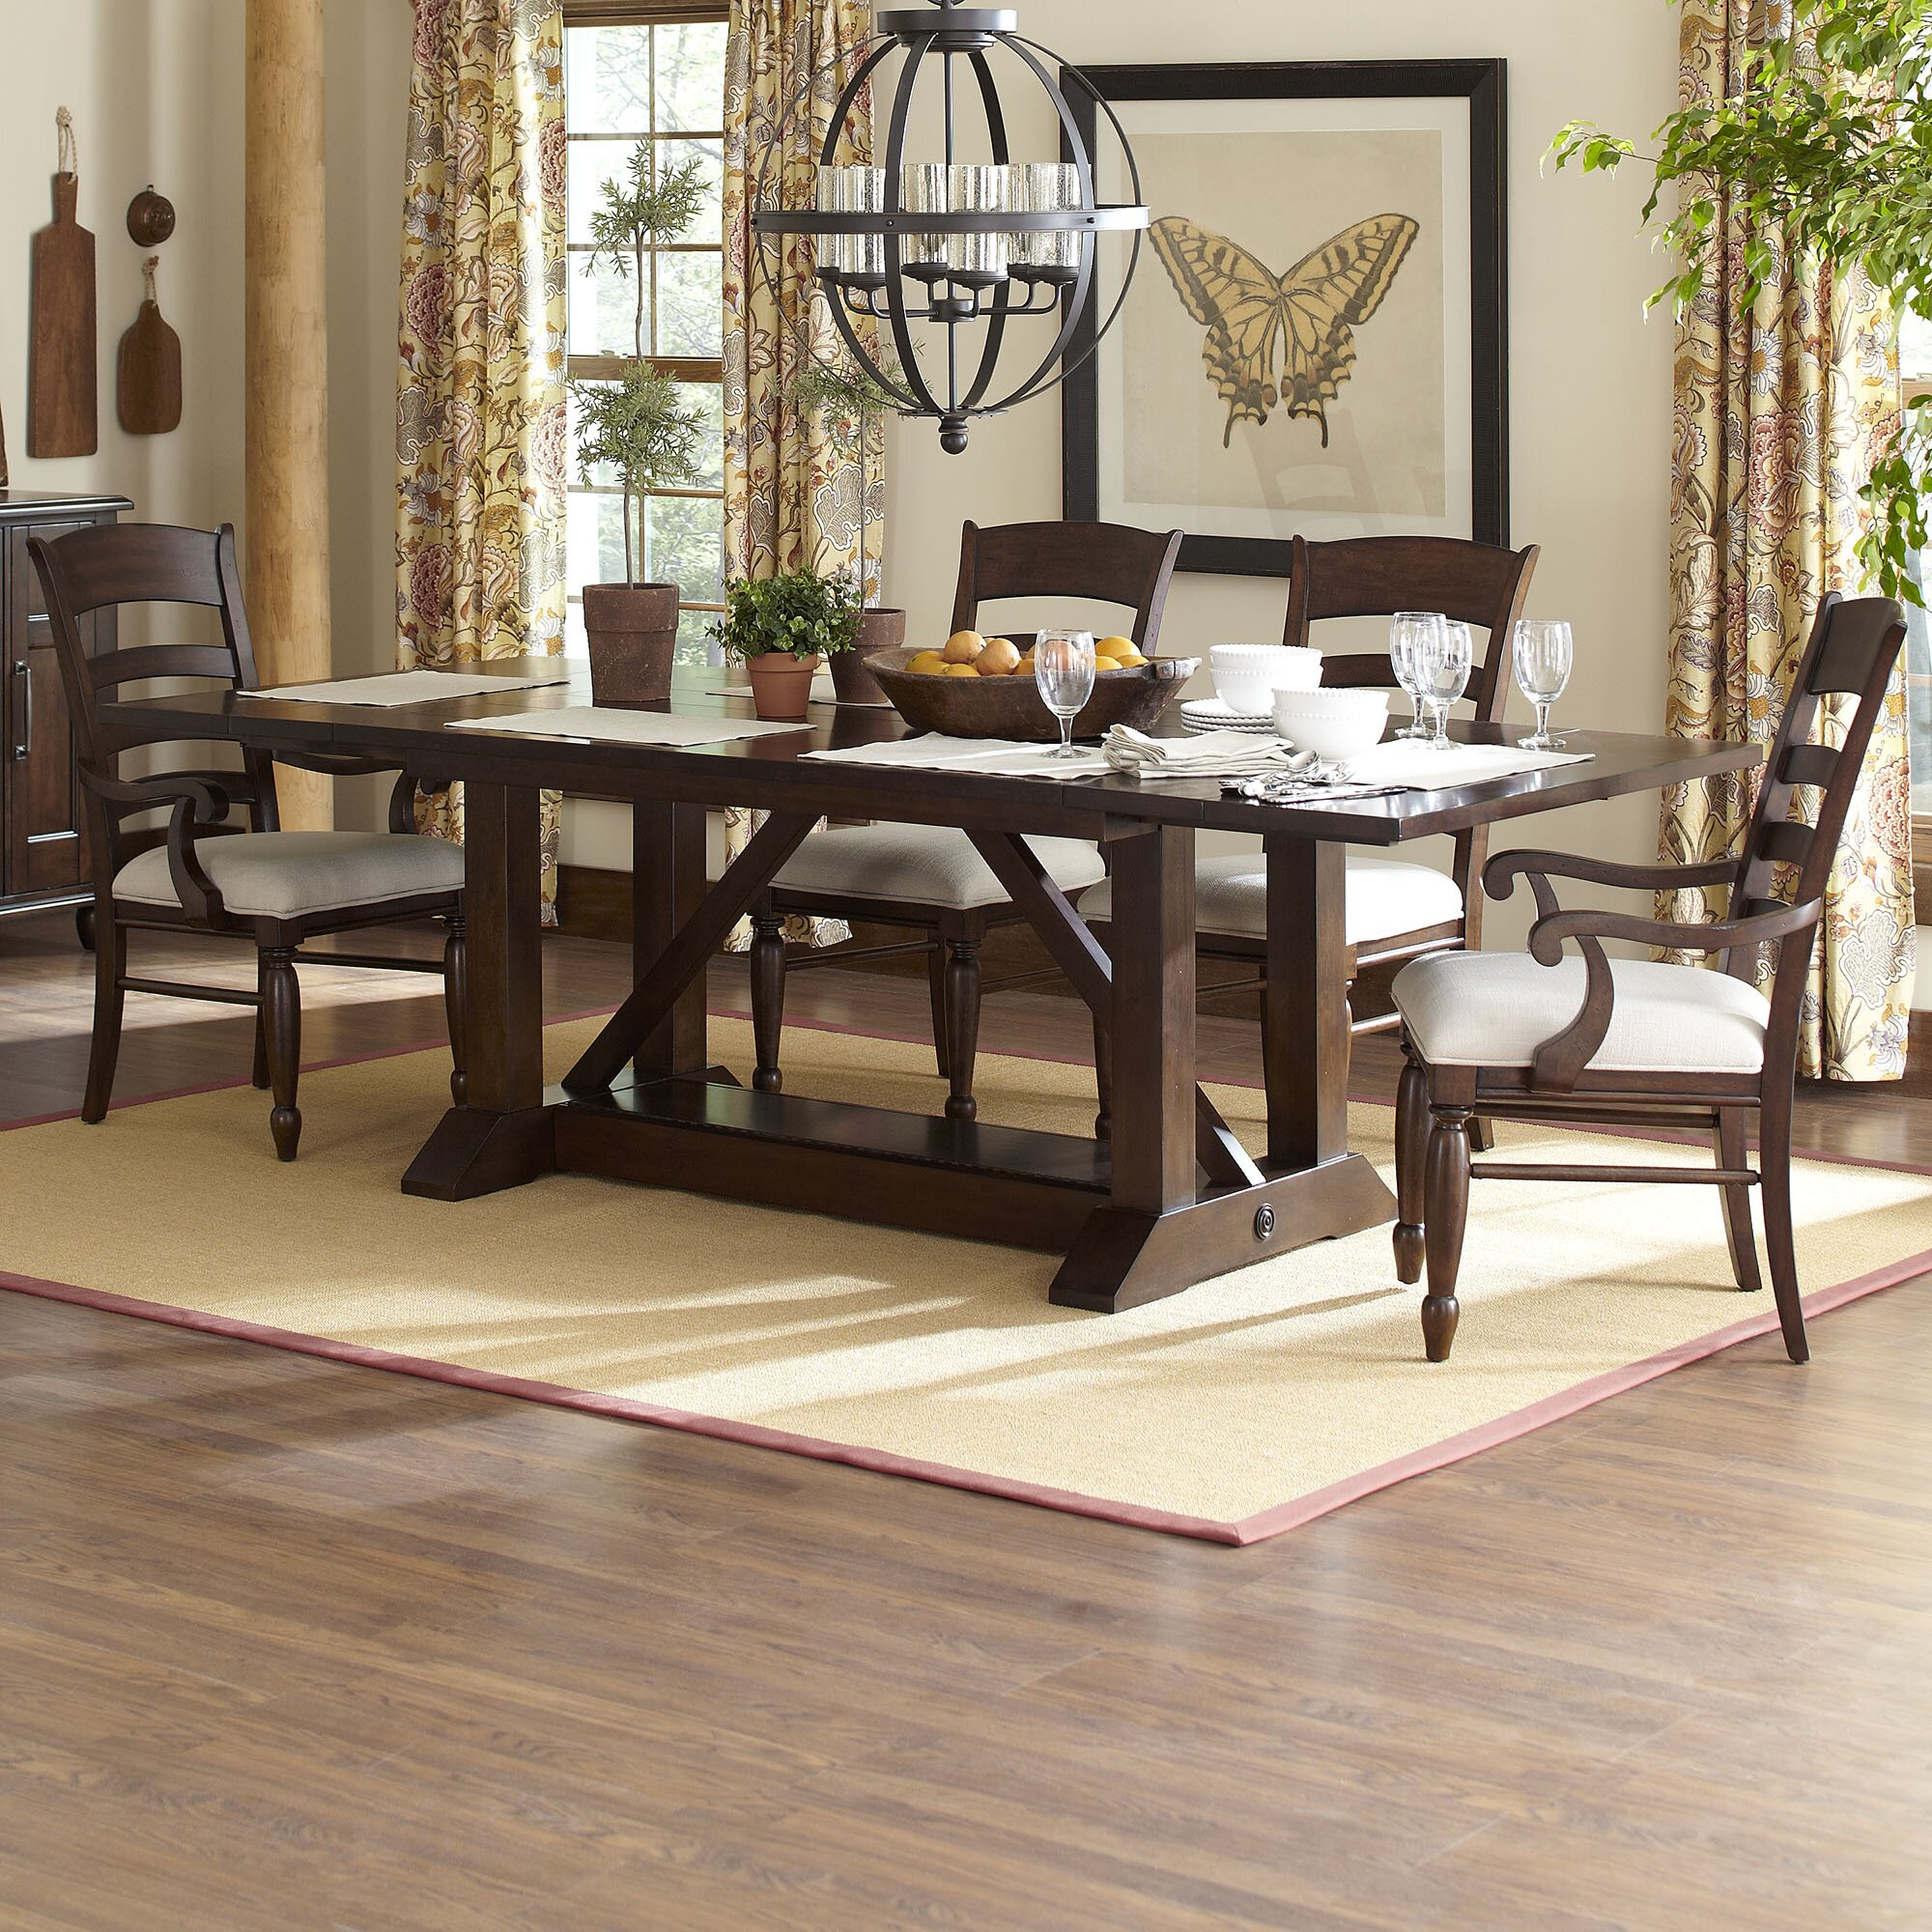 Birch lane lisbon extending dining table reviews for Wayfair dining table